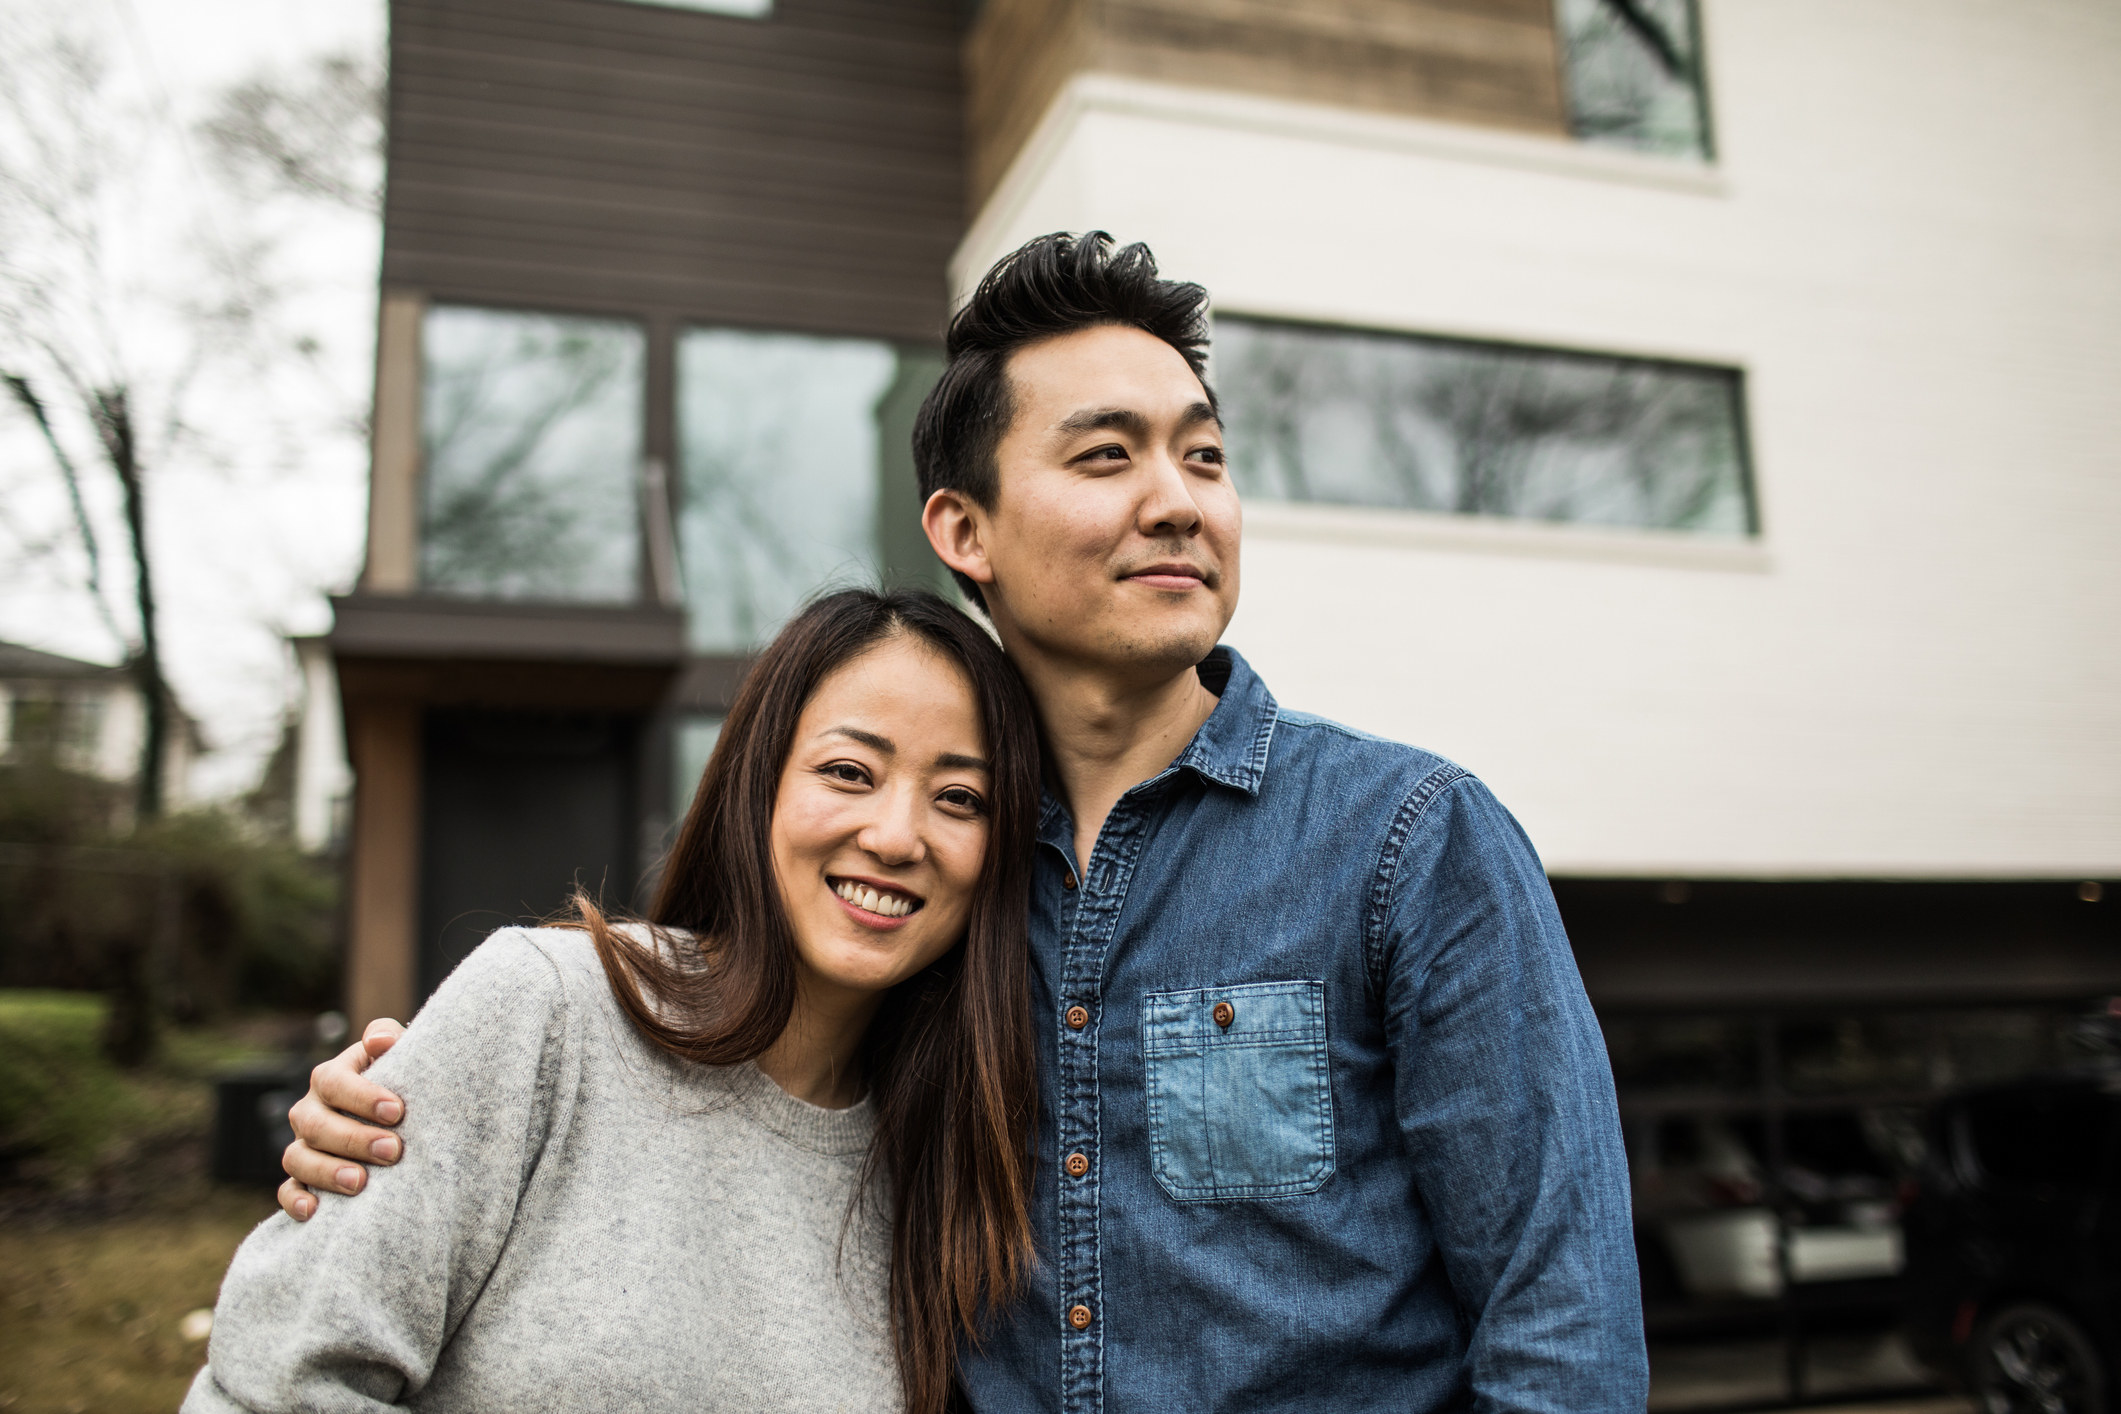 A young woman and man embracing and standing in front of a house